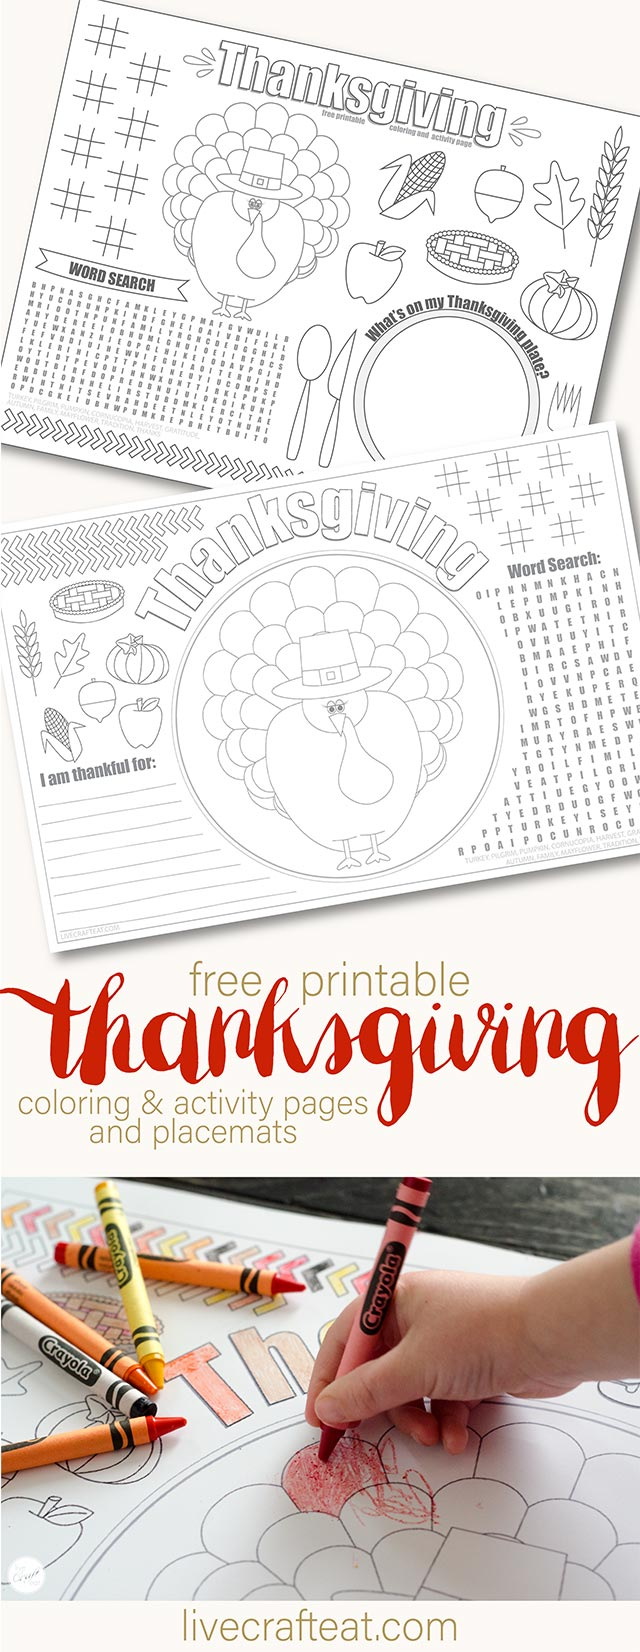 graphic about Printable Thanksgiving Placemat named Printable Thanksgiving Placemats For Youngsters - Totally free Stay